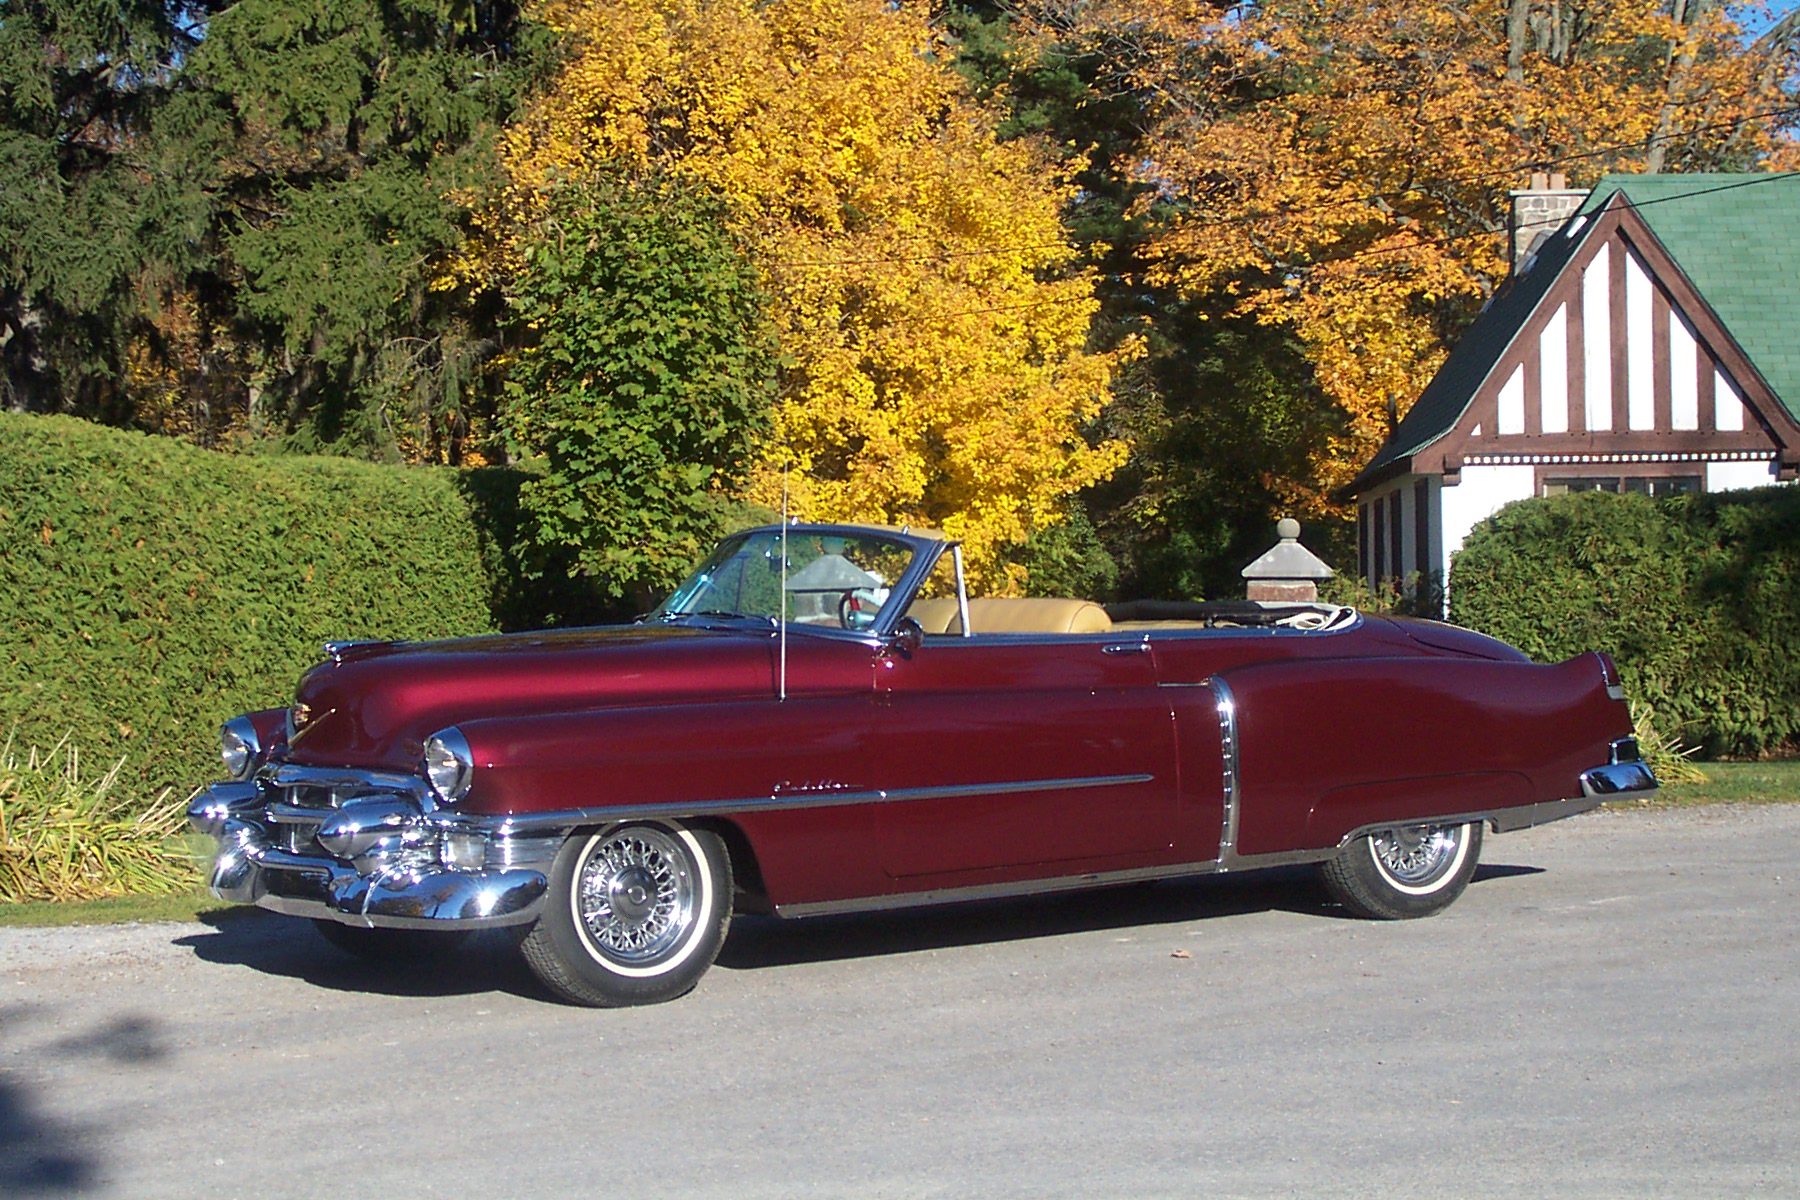 File:1953CadillacConvertible.jpg - Wikimedia Commons